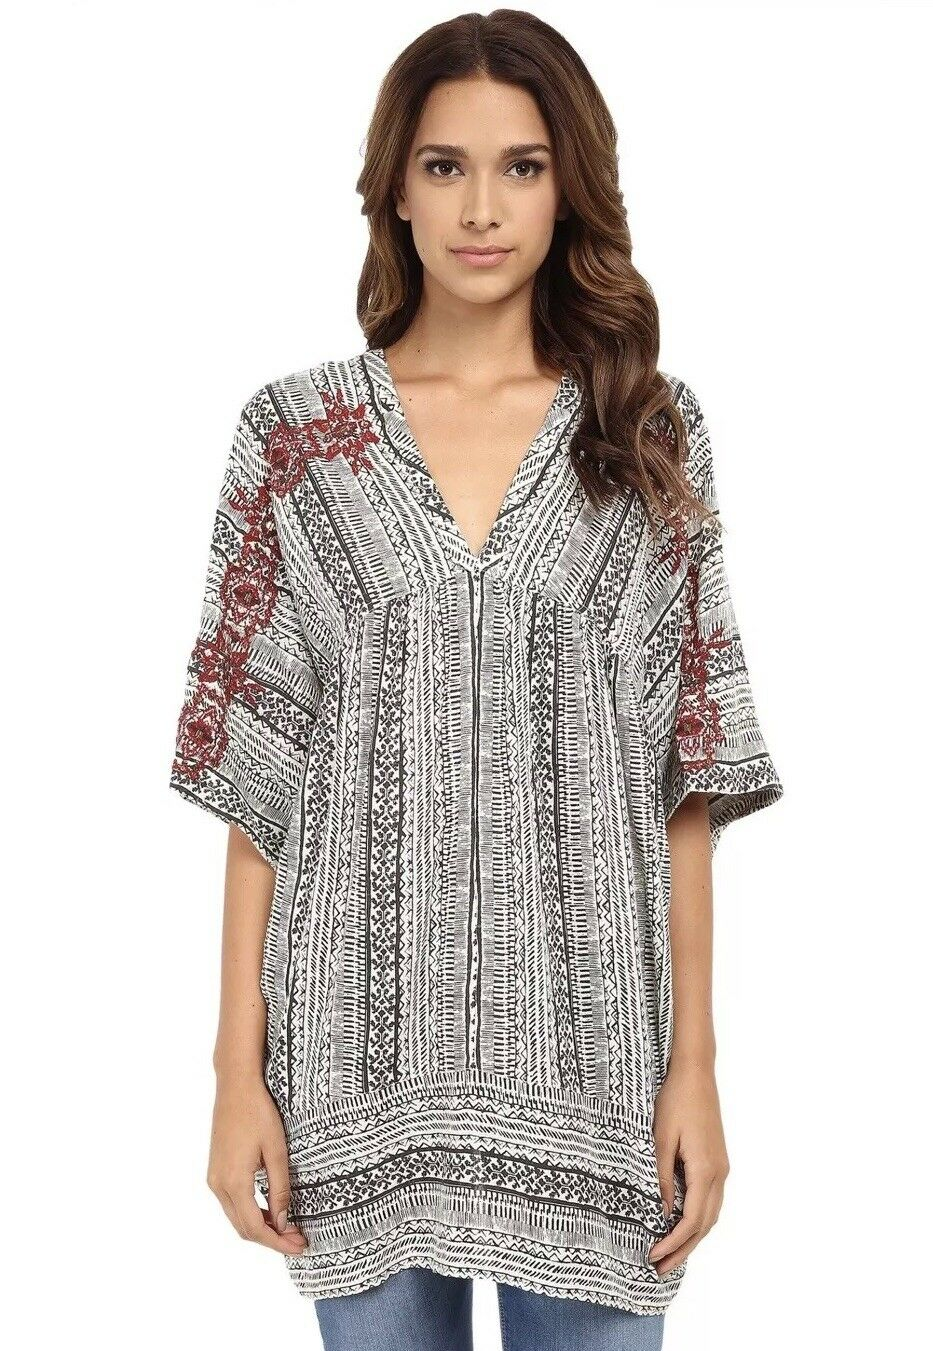 NEW  168 Free People Tribal Beat Kaftan Tunic Size XS Top Mini Dress